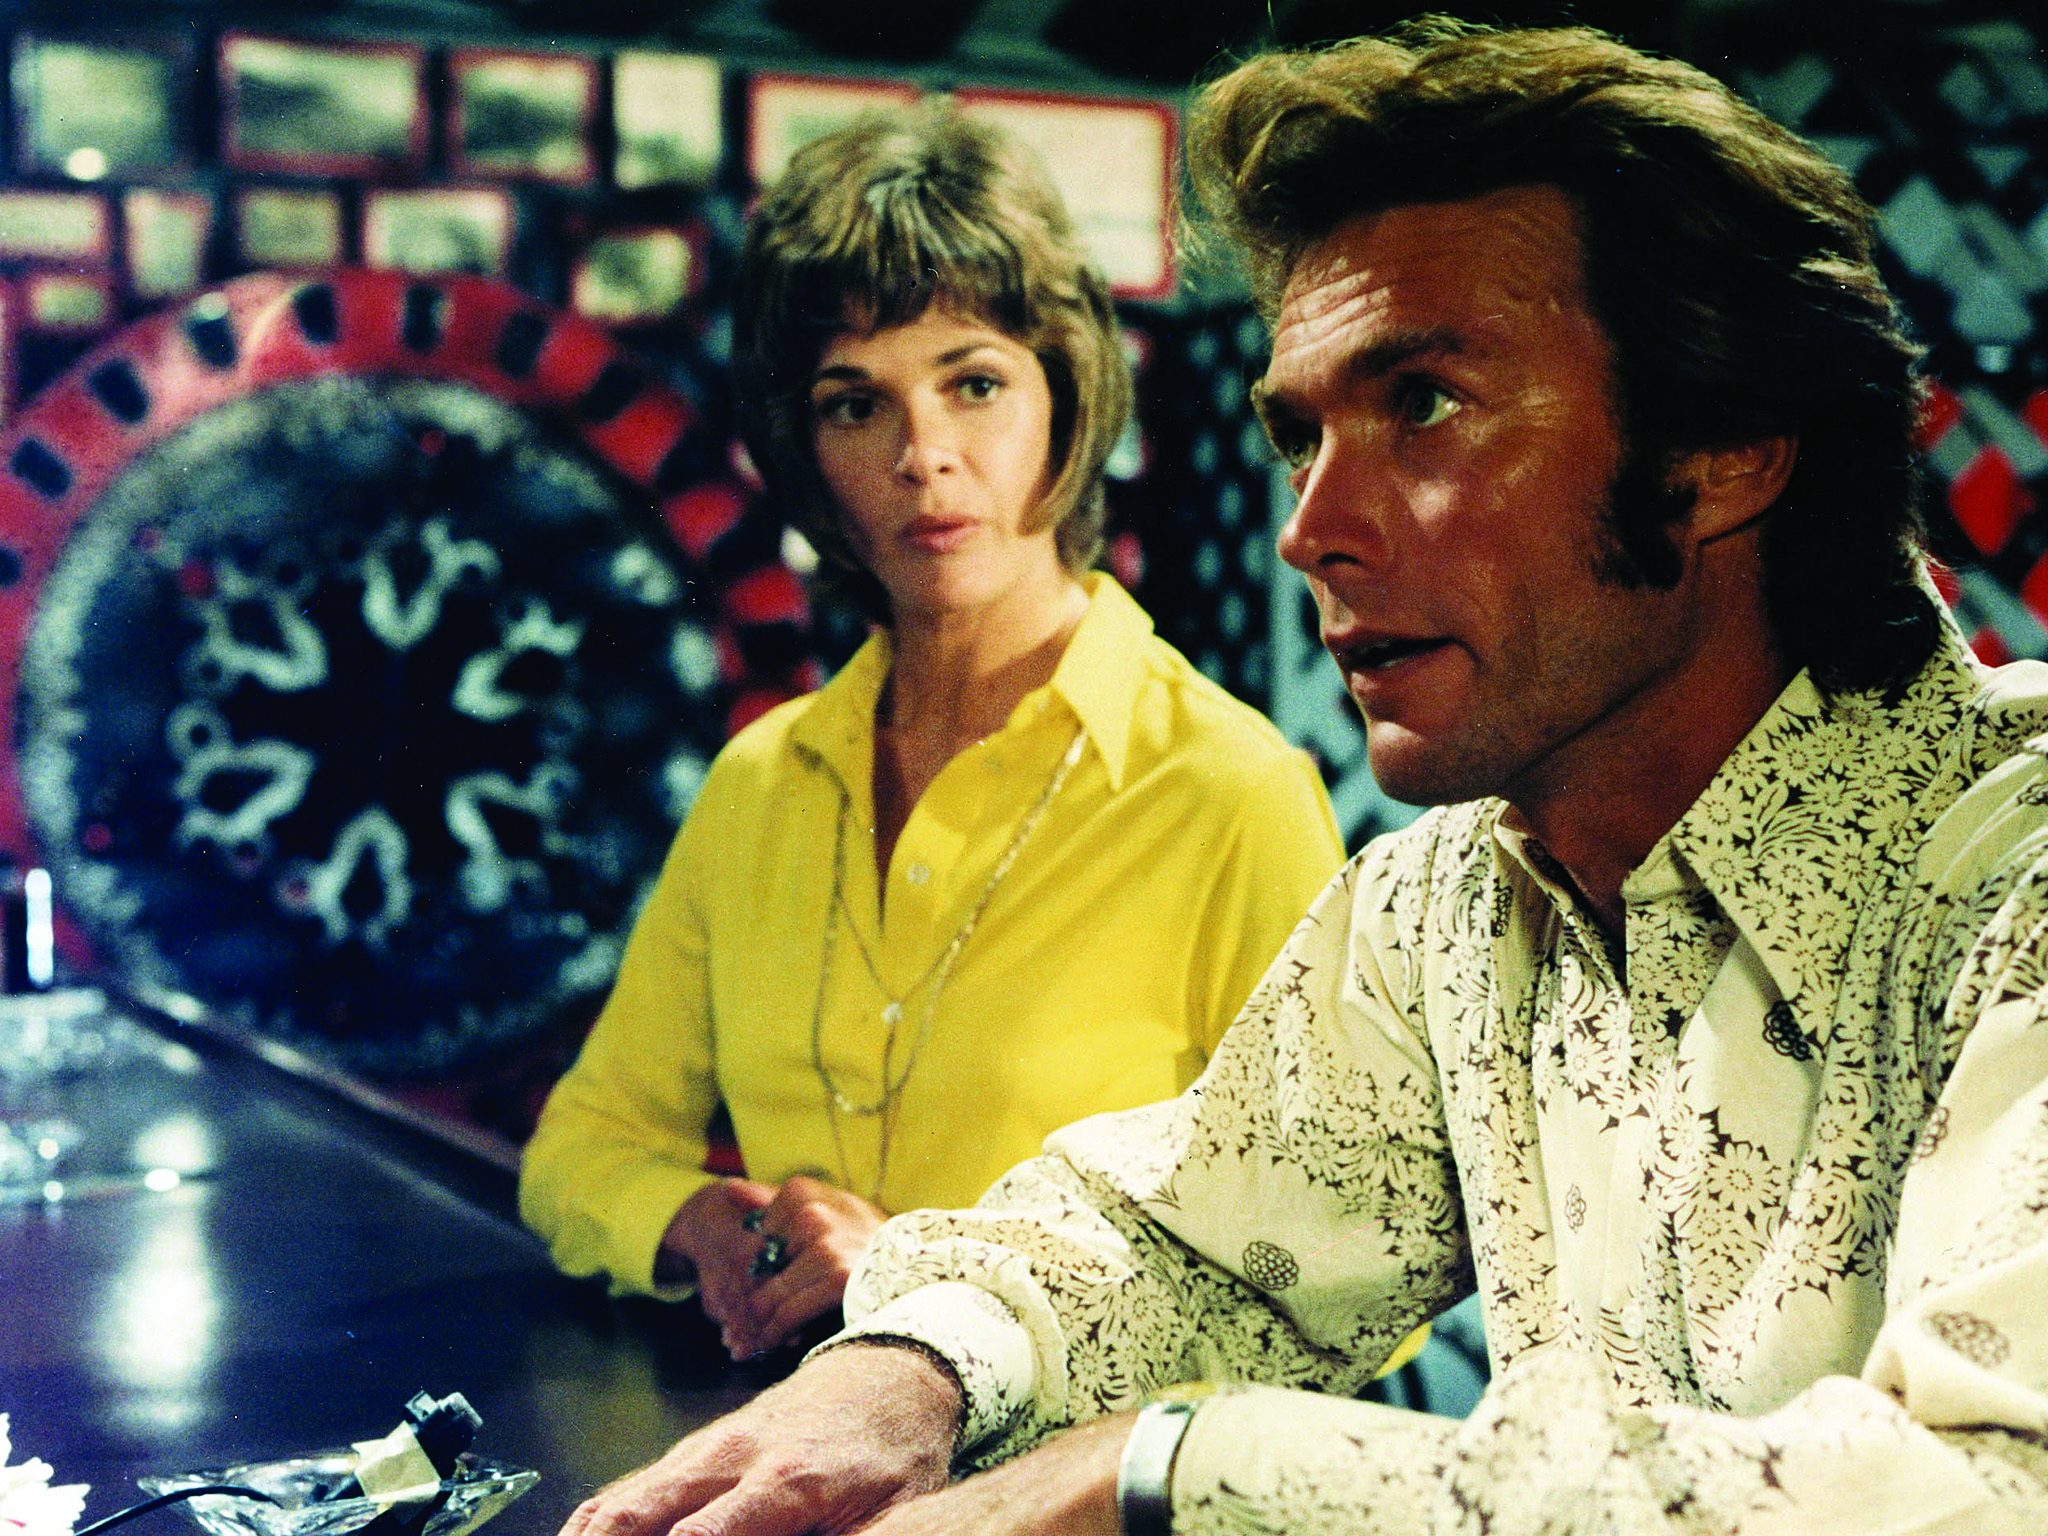 Play Misty for Me, best and worst Clint Eastwood movies